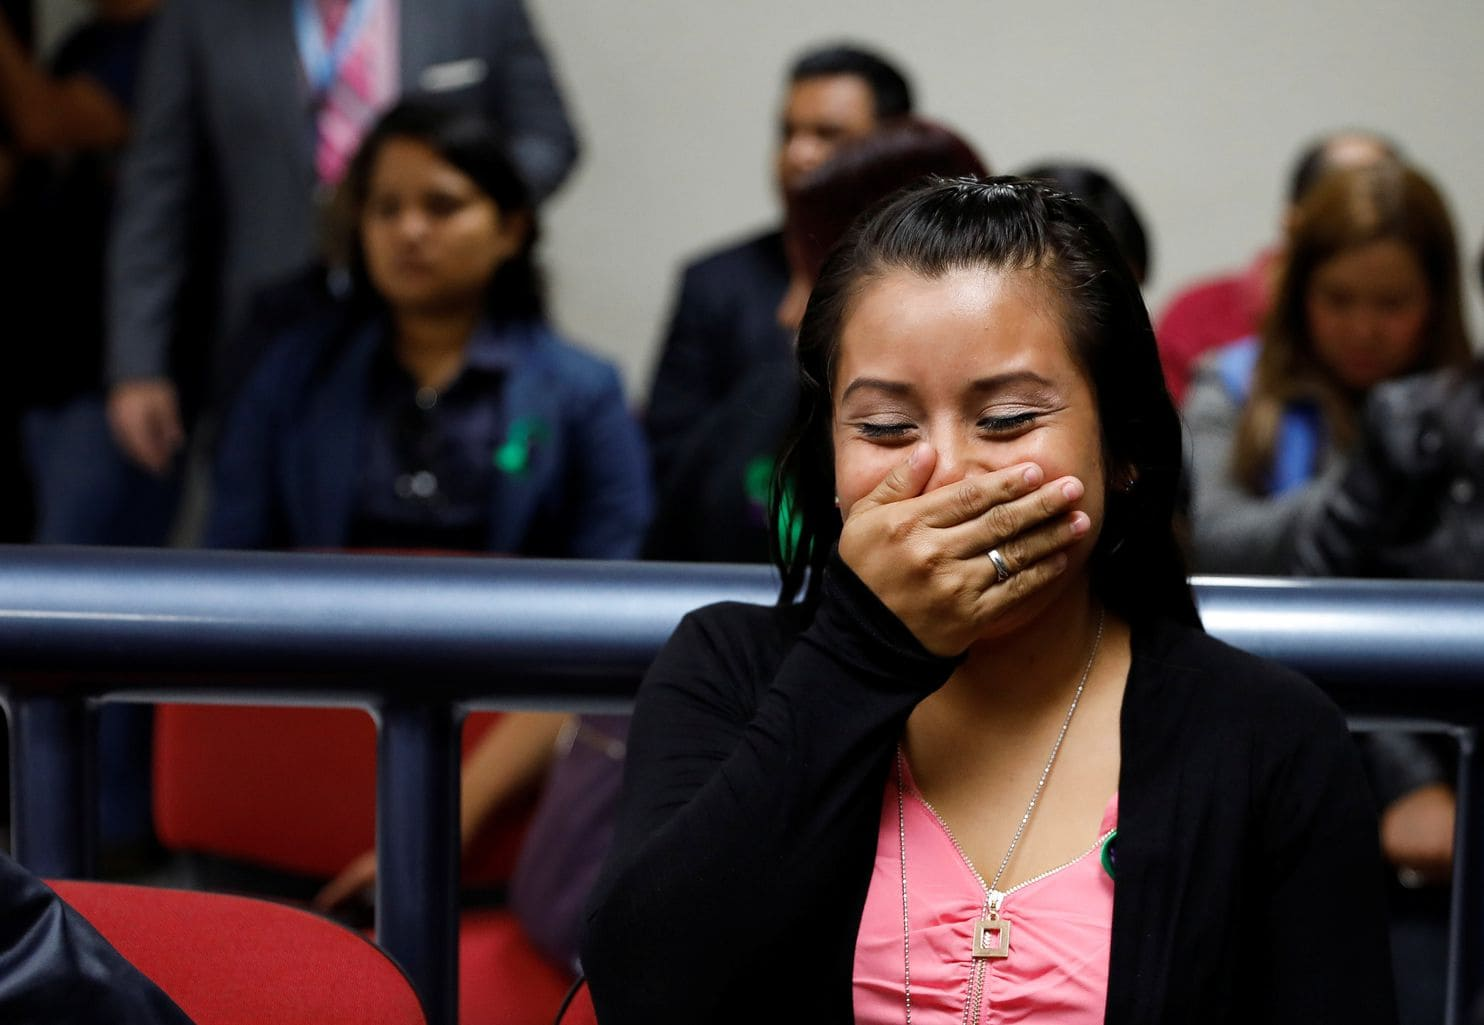 A Salvadoran woman sentenced for 30 years in the death of her stillborn baby freed after 3 years